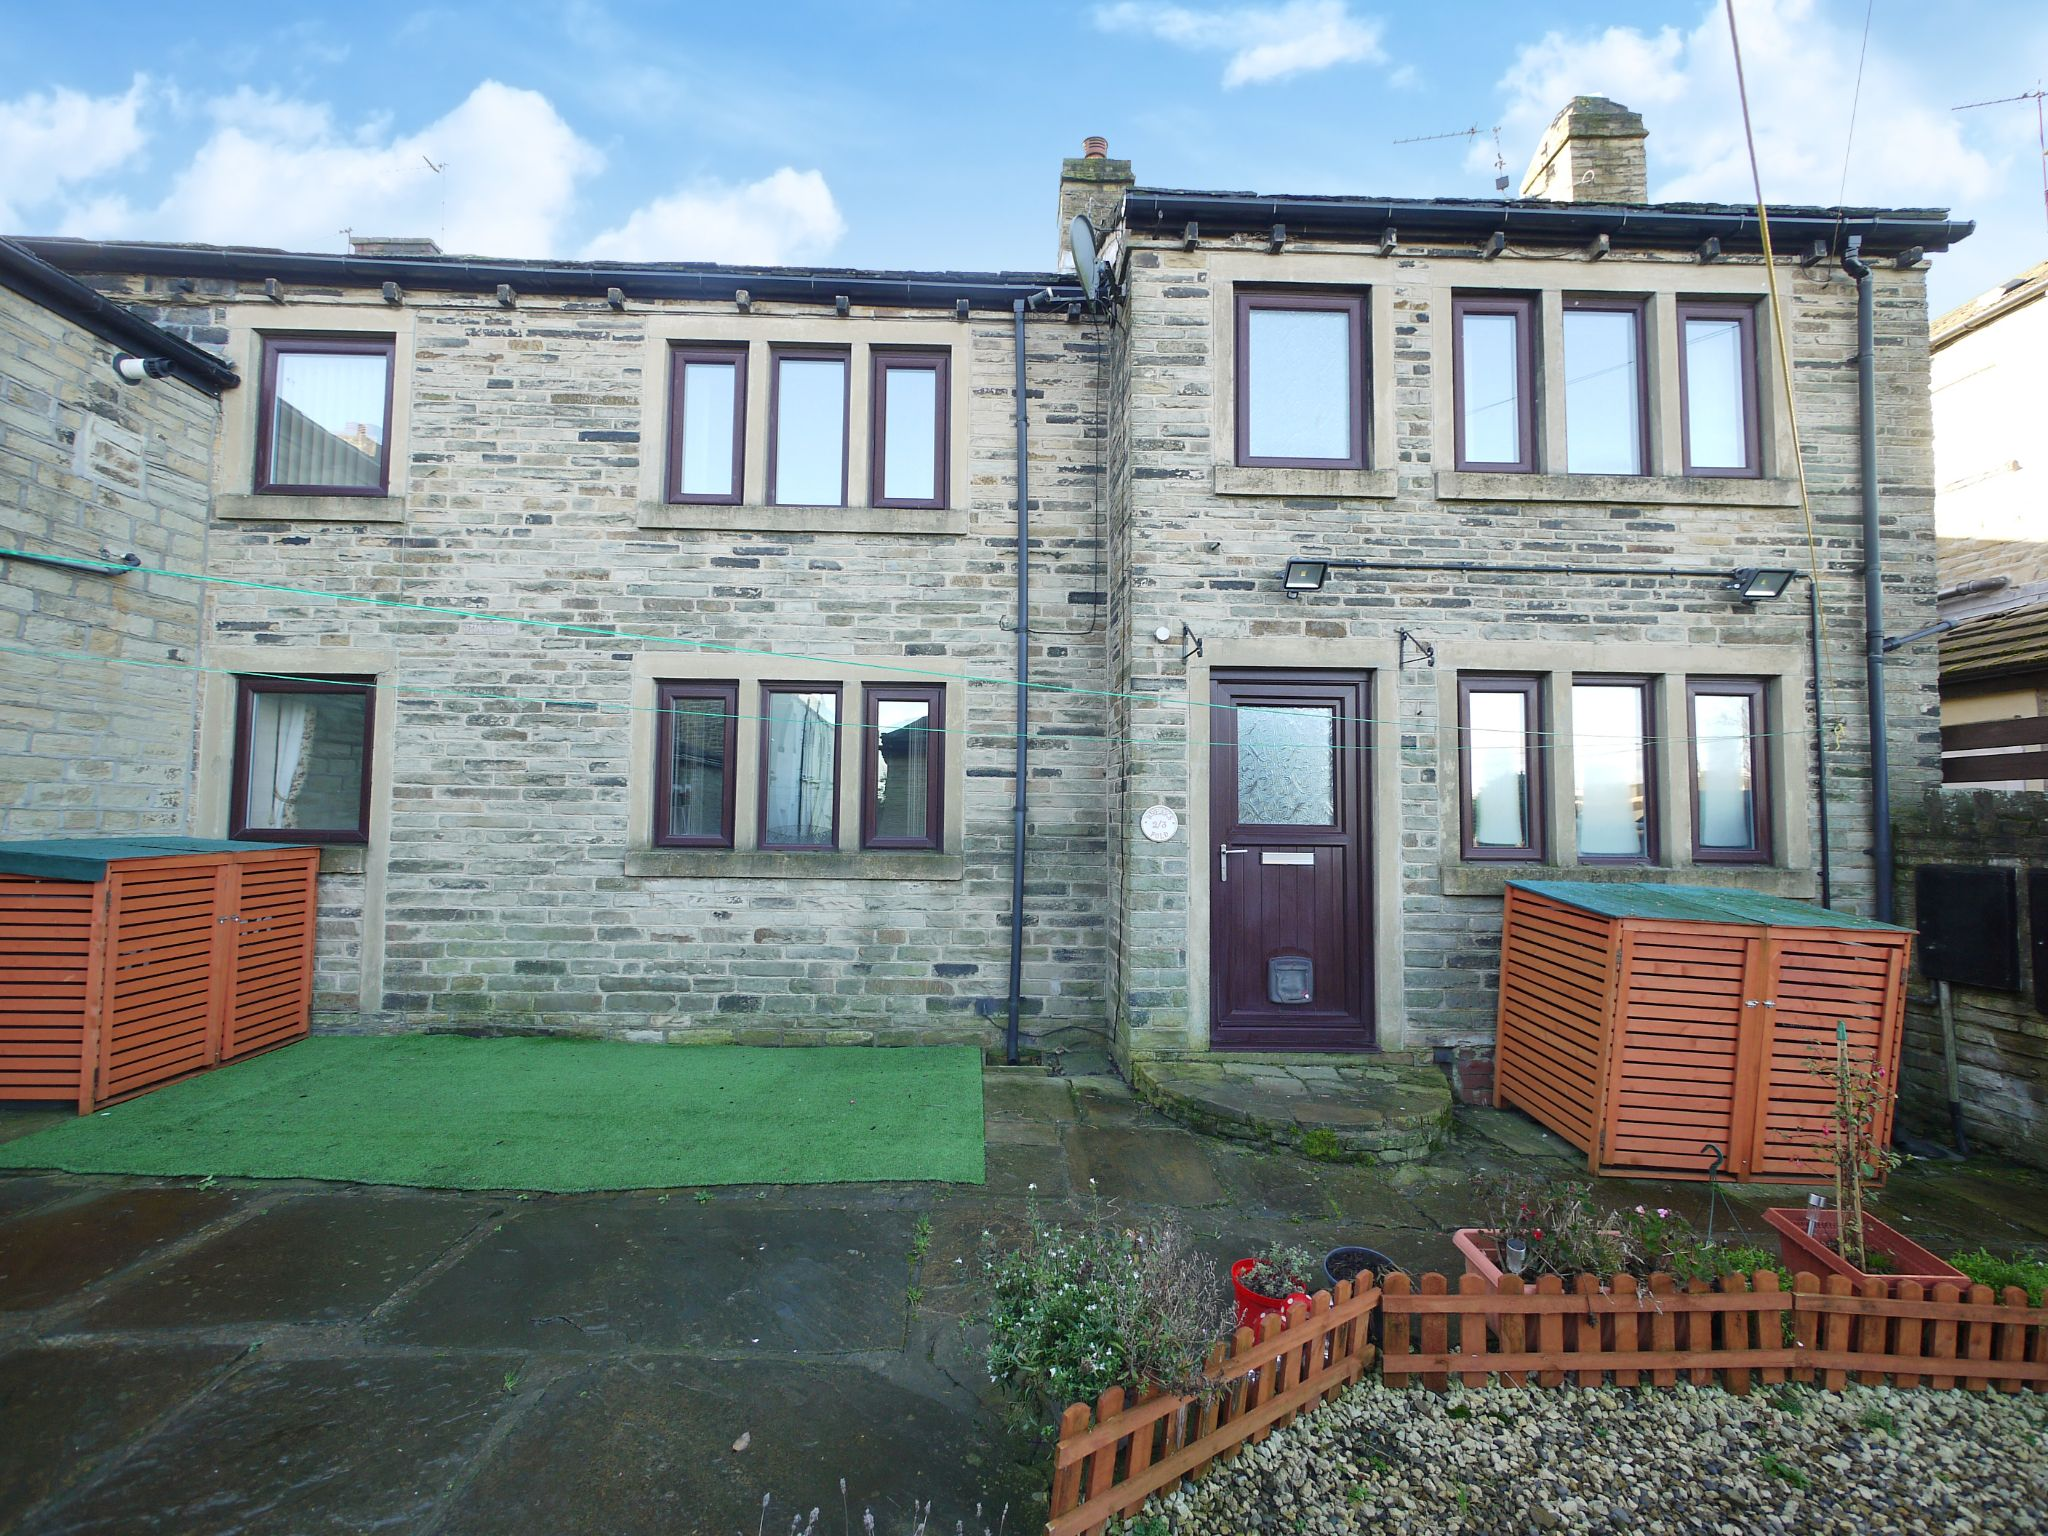 3 bedroom cottage house To Let in Bradford - Photograph 1.